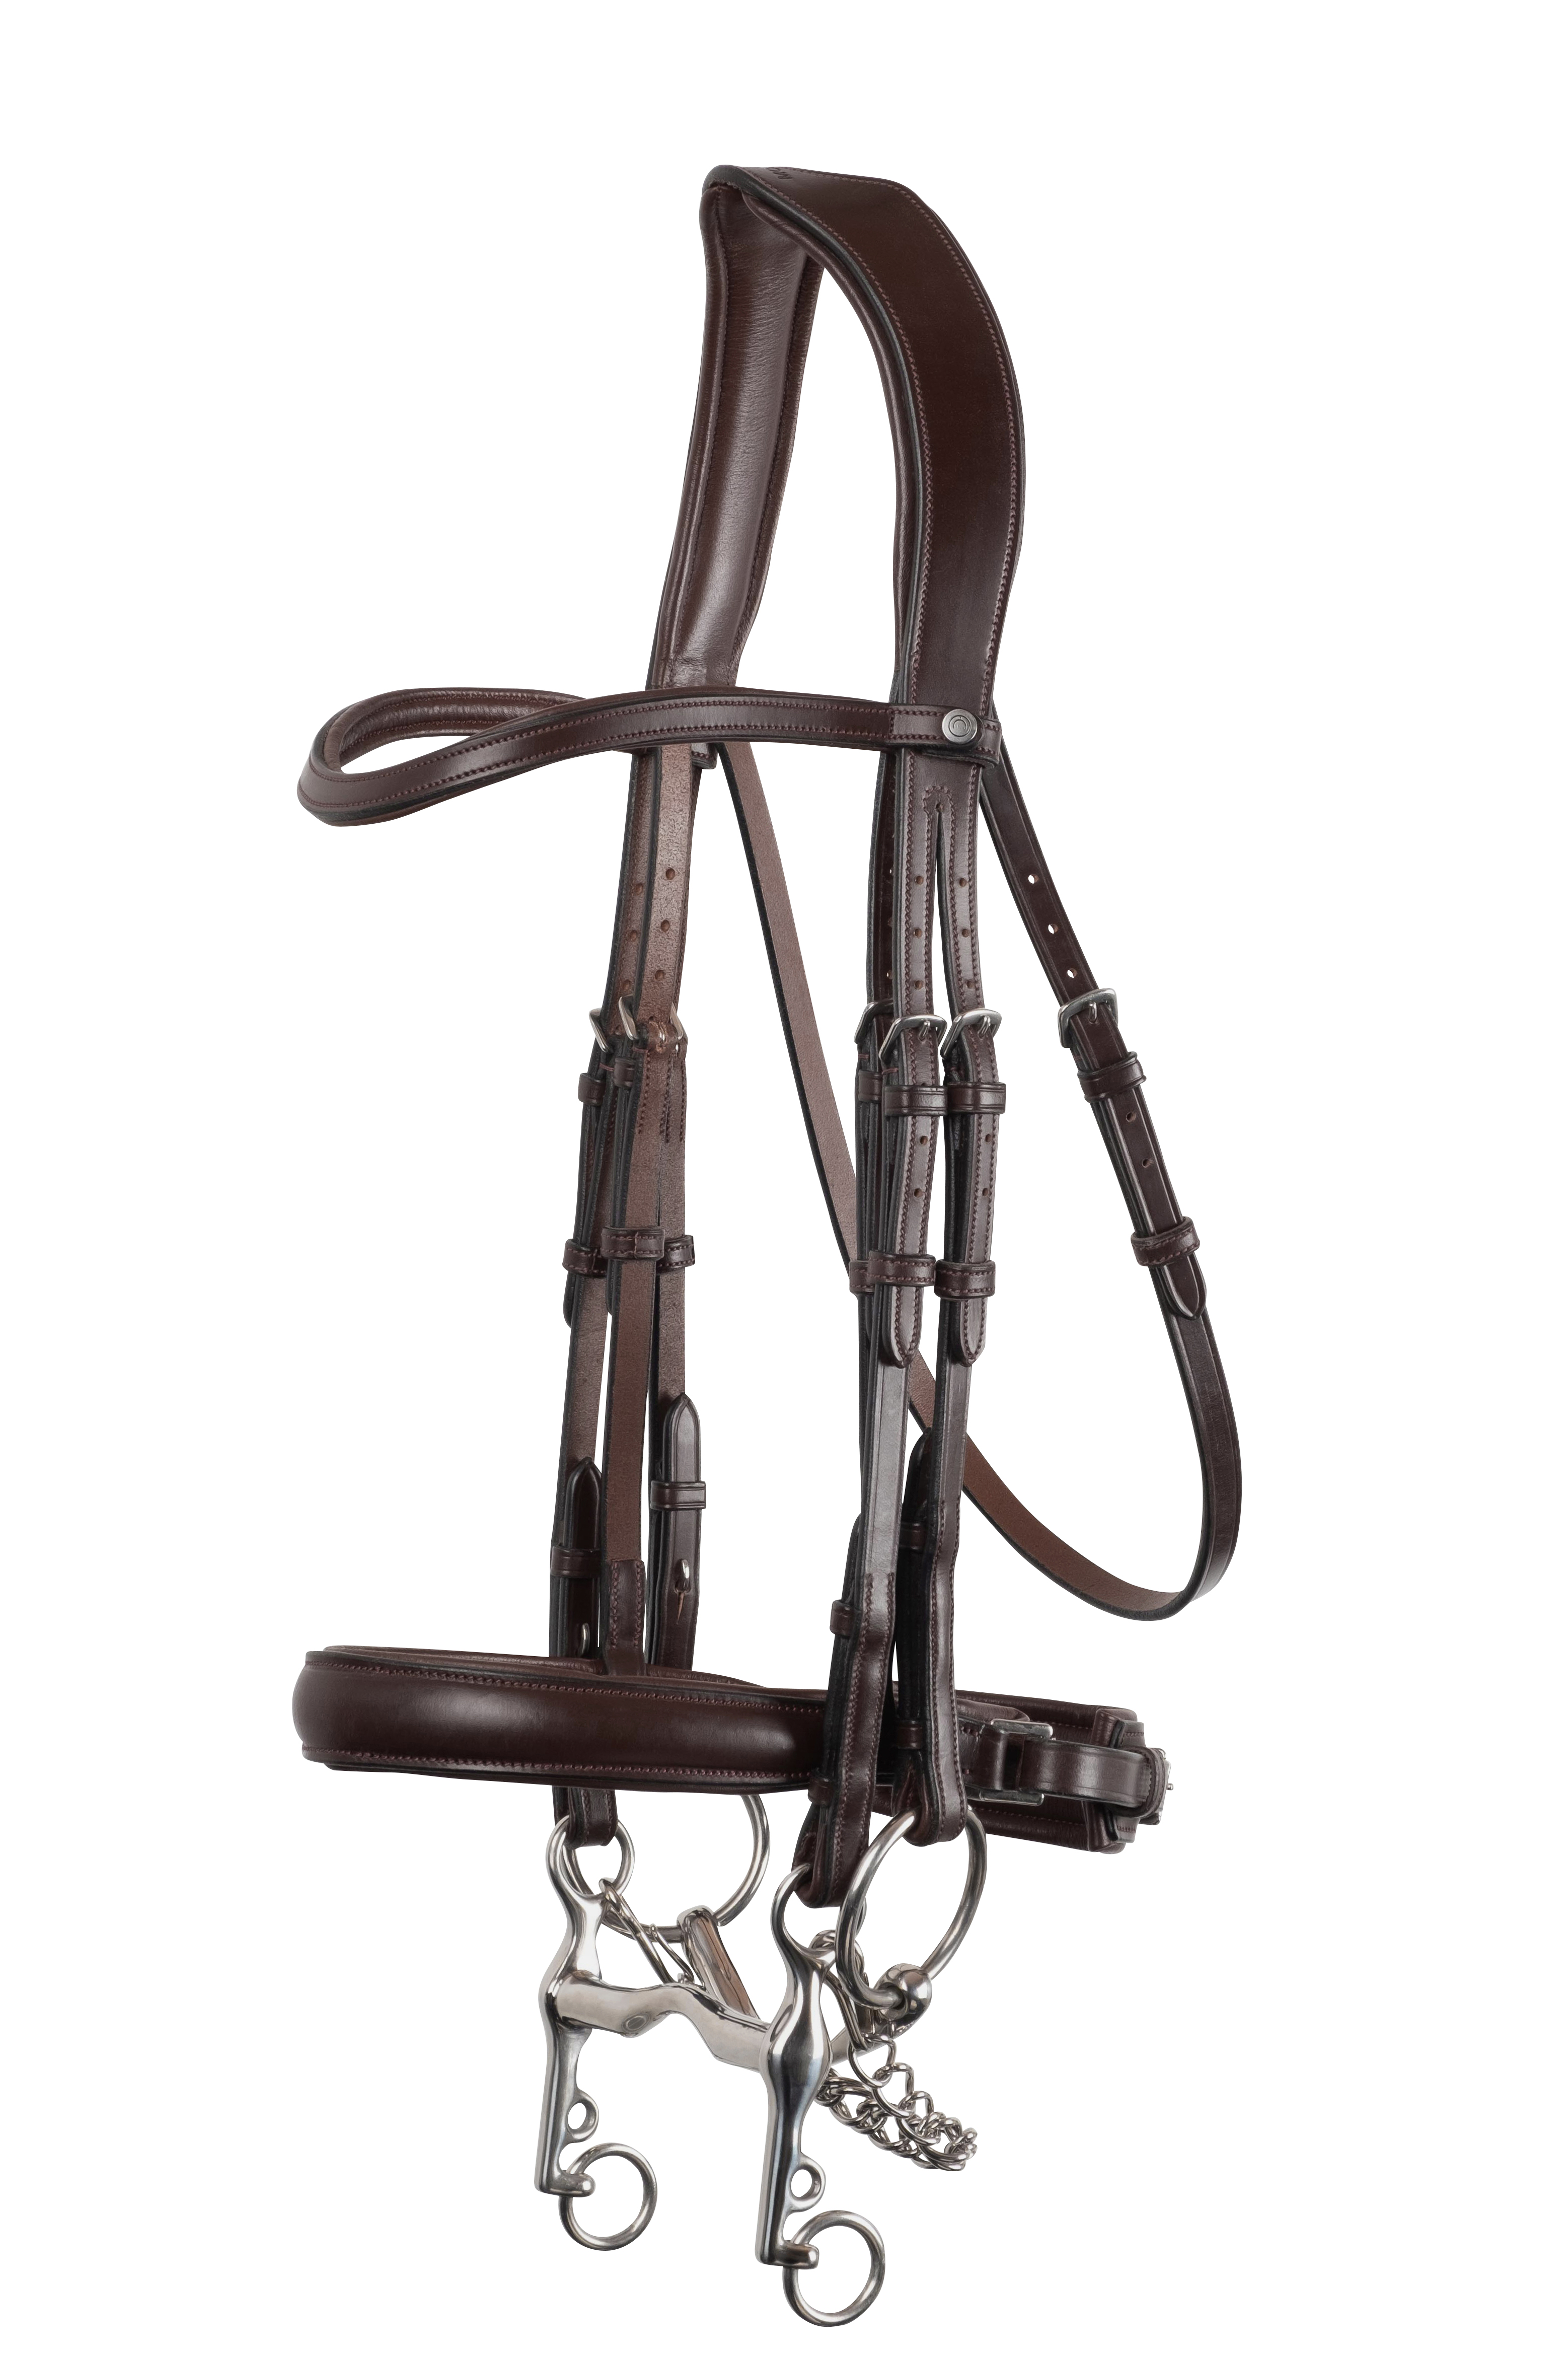 62801-8-Normandie-Double-Bridle.jpg